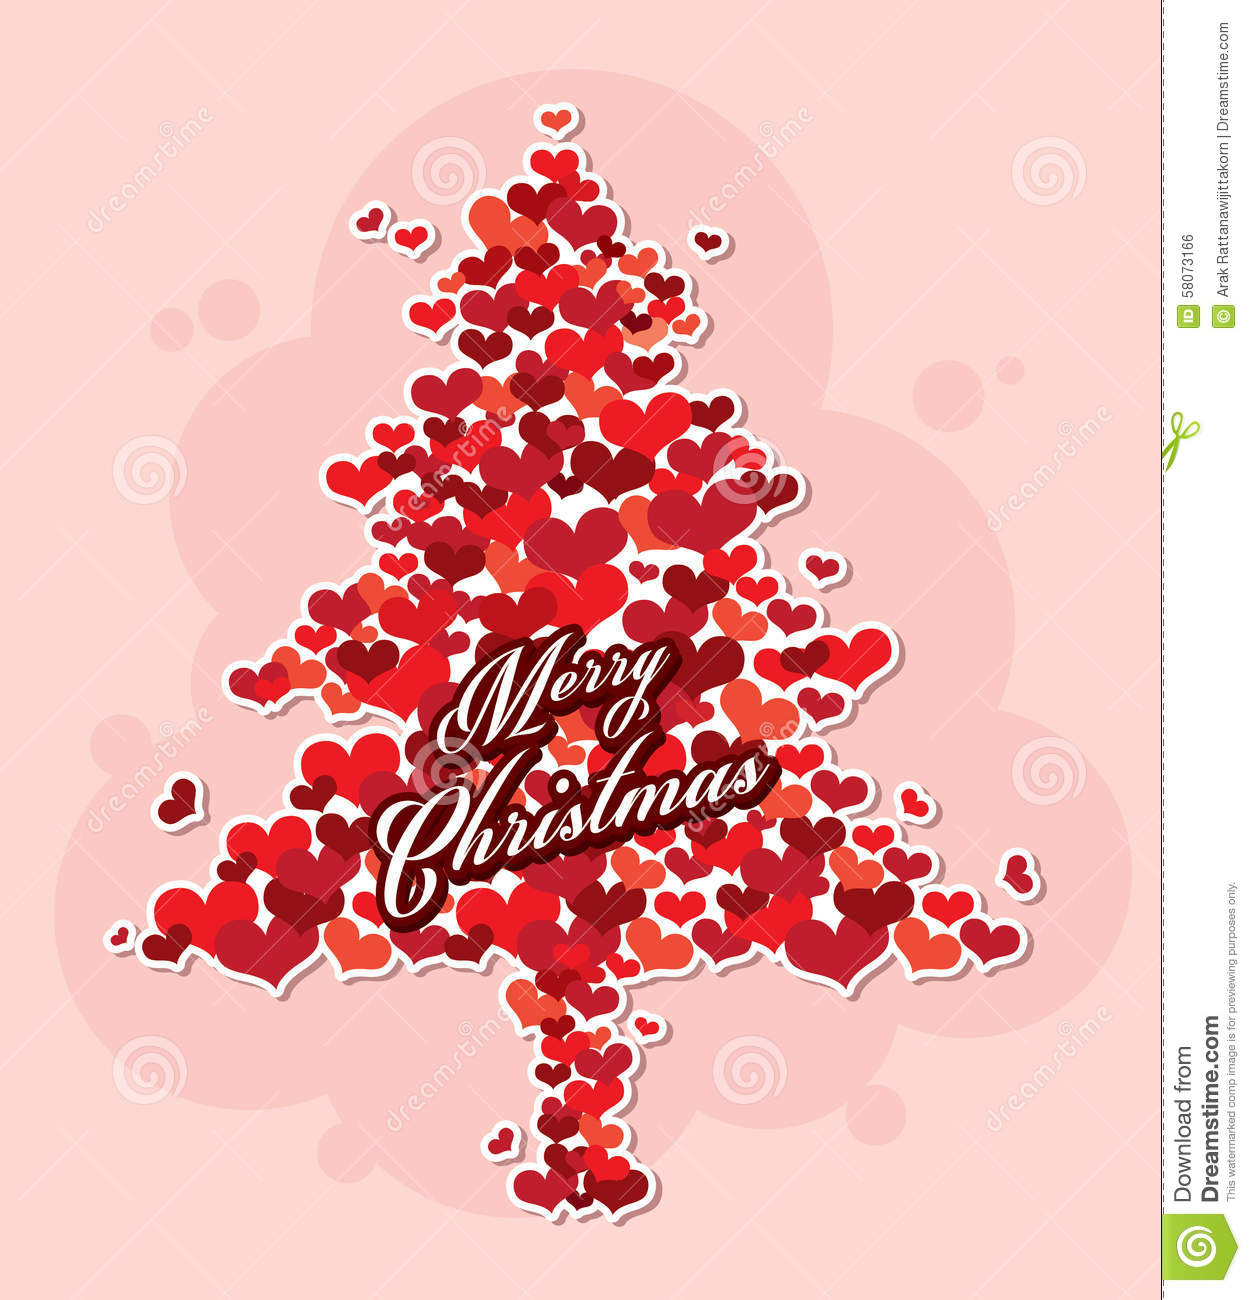 download merry christmas tree from heart stock vector illustration of graphic concept